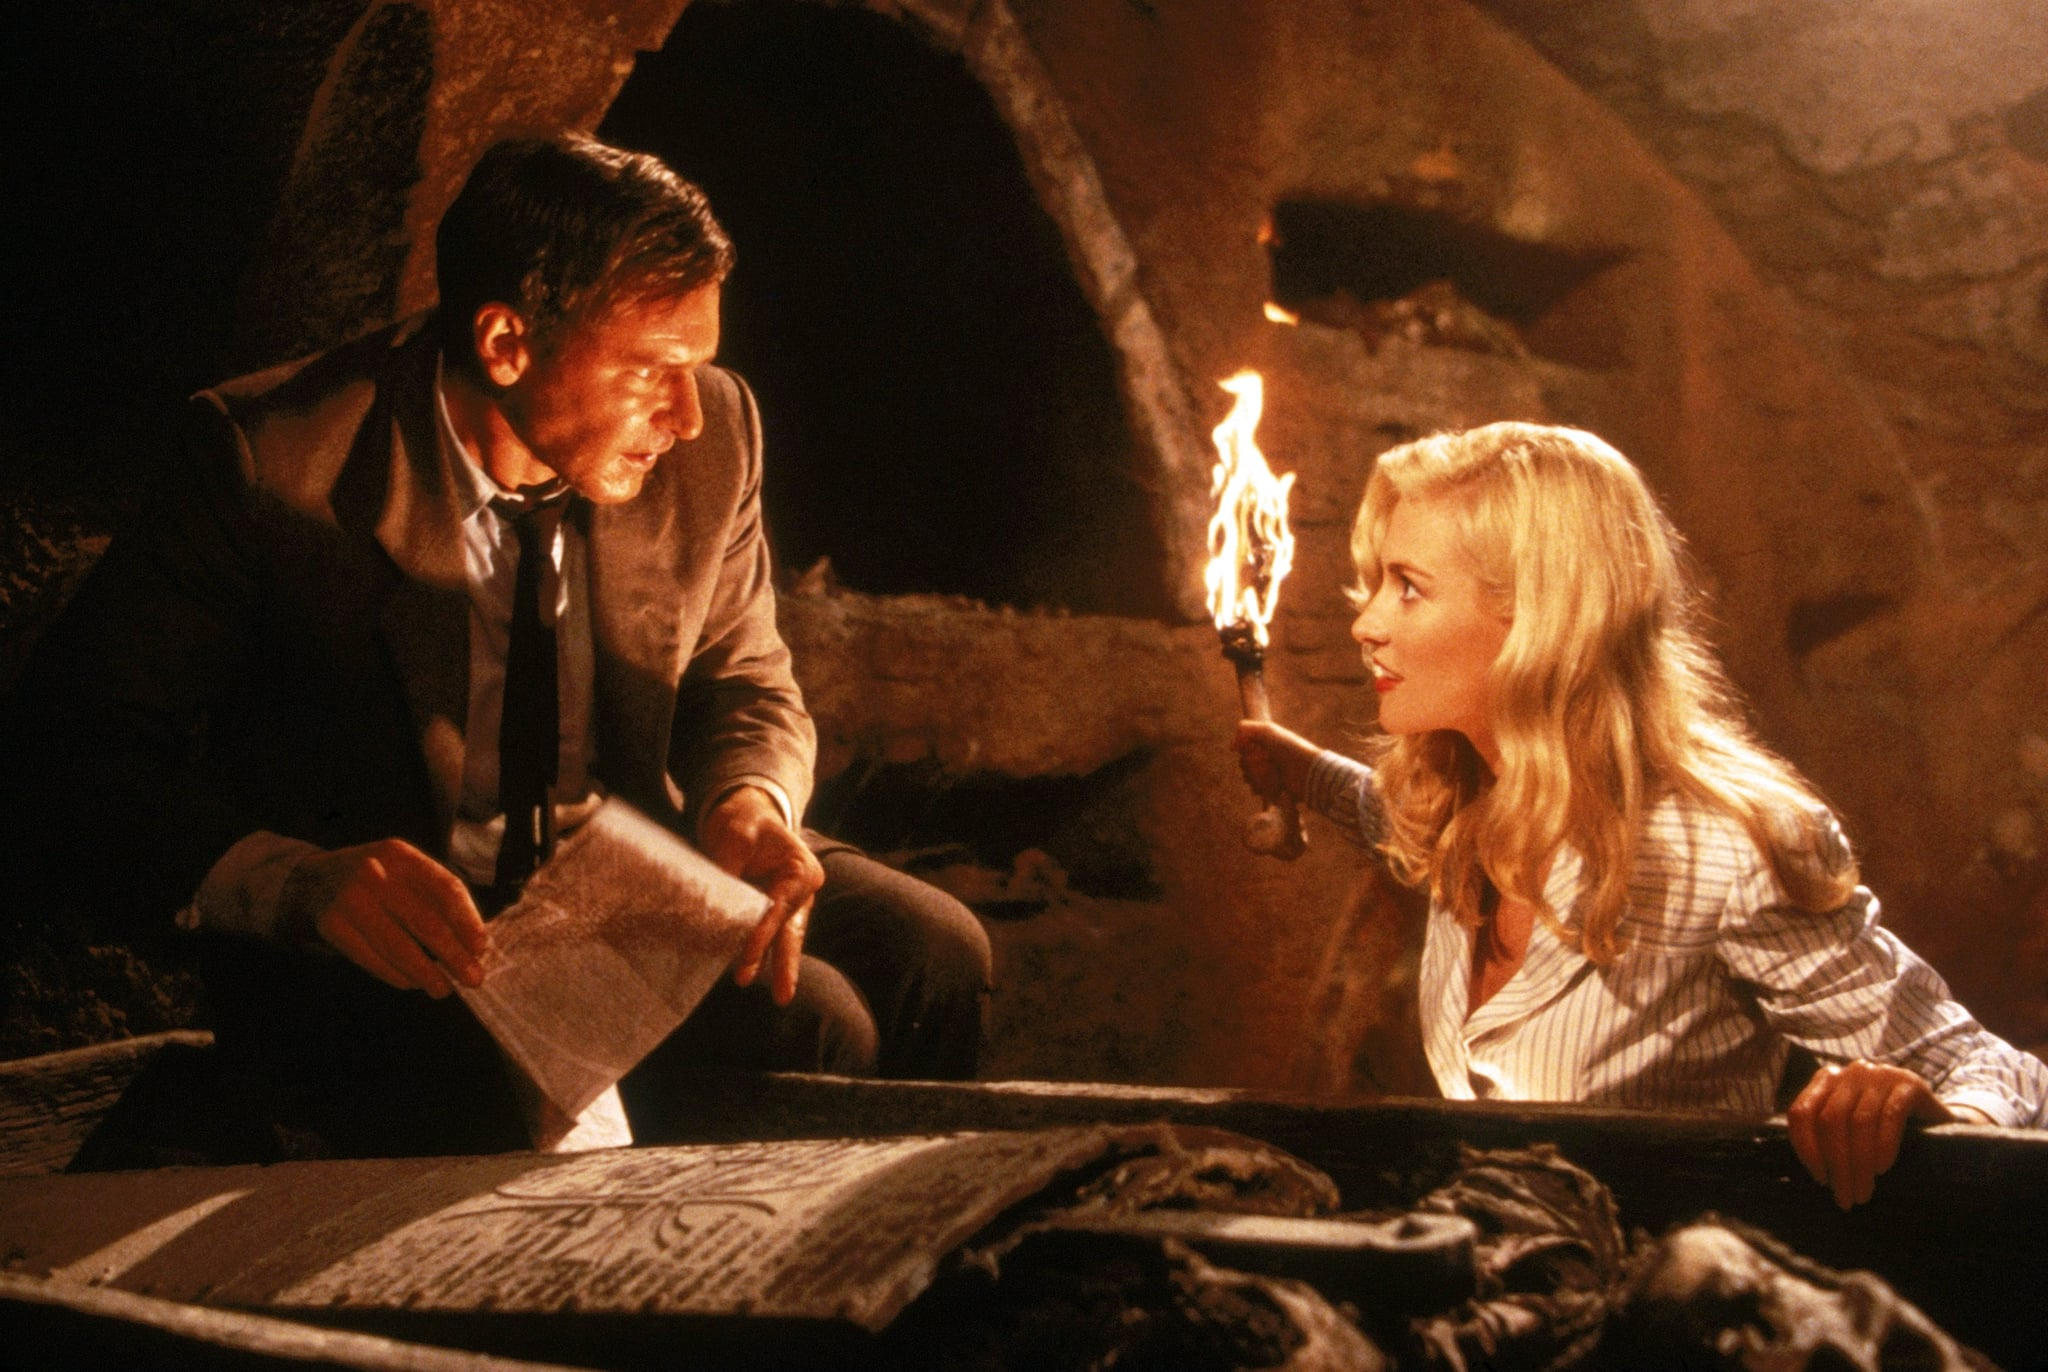 INDIANA JONES AND THE LAST CRUSADE, Harrison Ford, Alison Doody, 1989, Paramount/courtesy Everett Collection